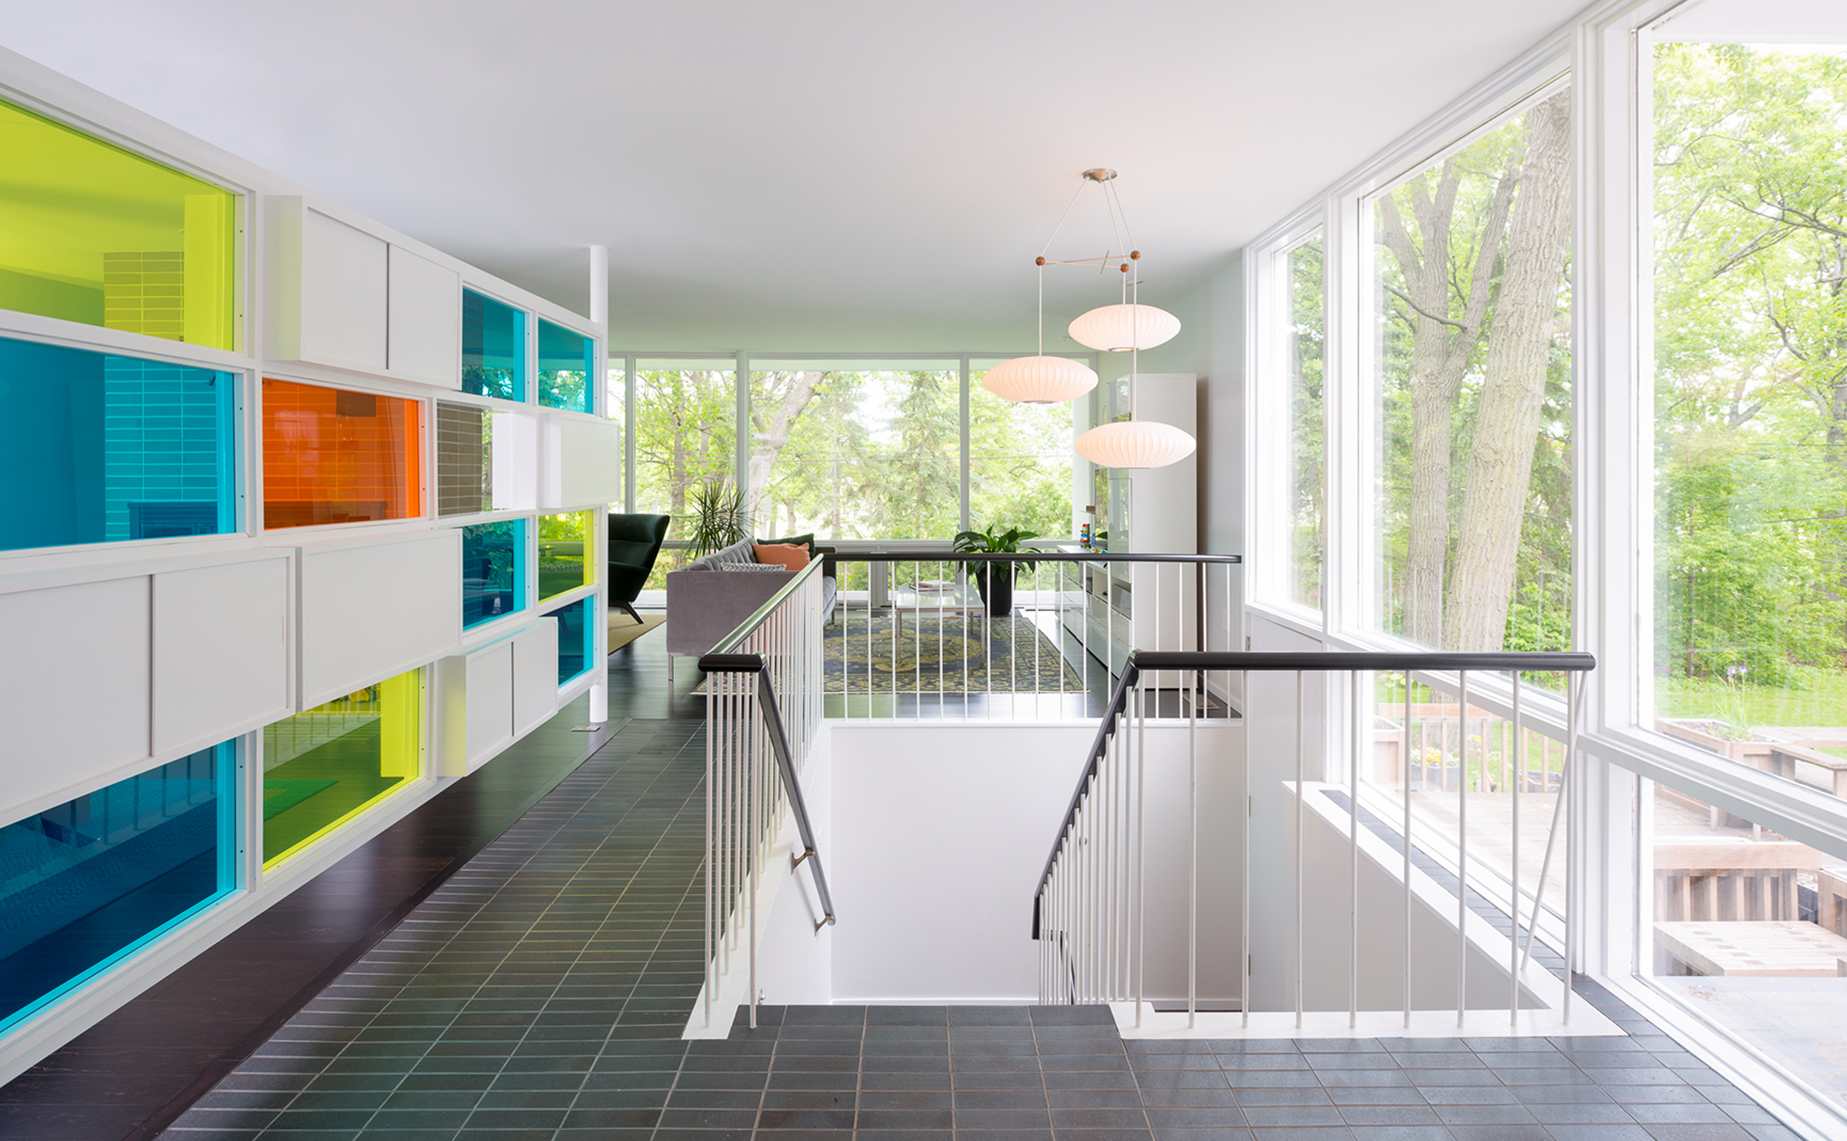 Tiled entry with colorful original divider wall and open stairwell